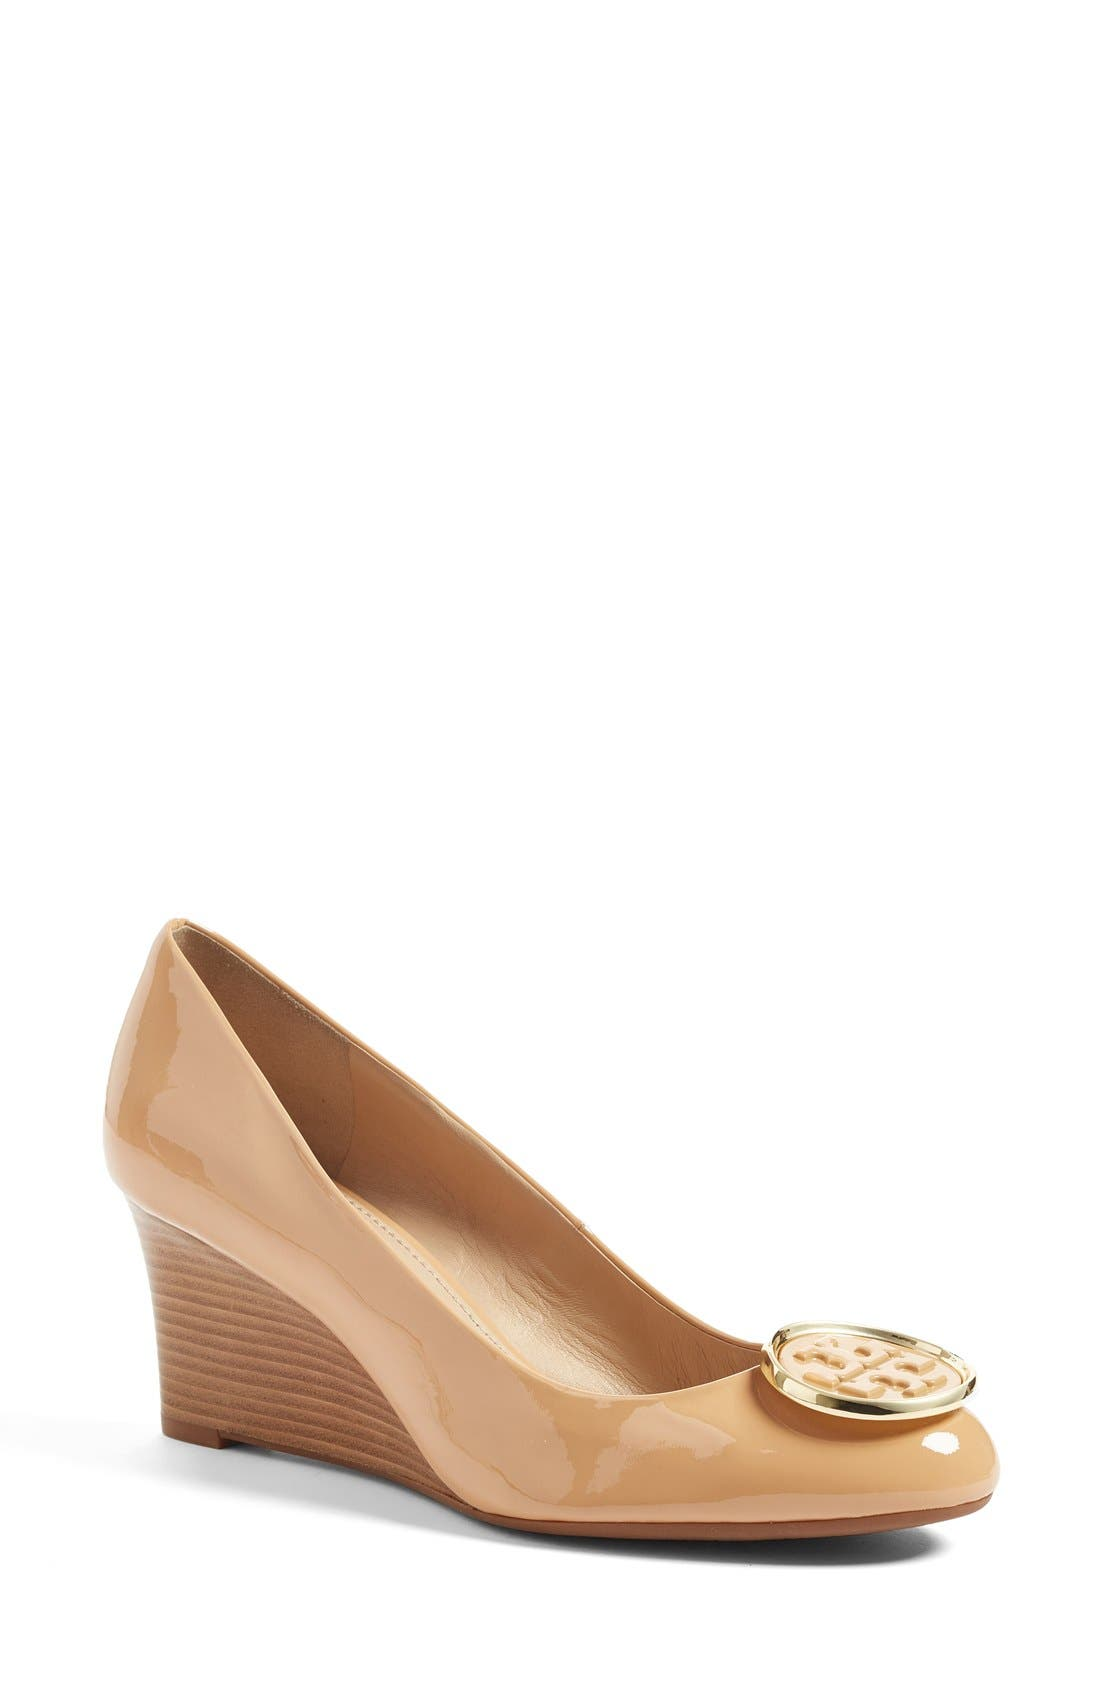 Main Image - Tory Burch Twiggie Wedge Pump (Women)